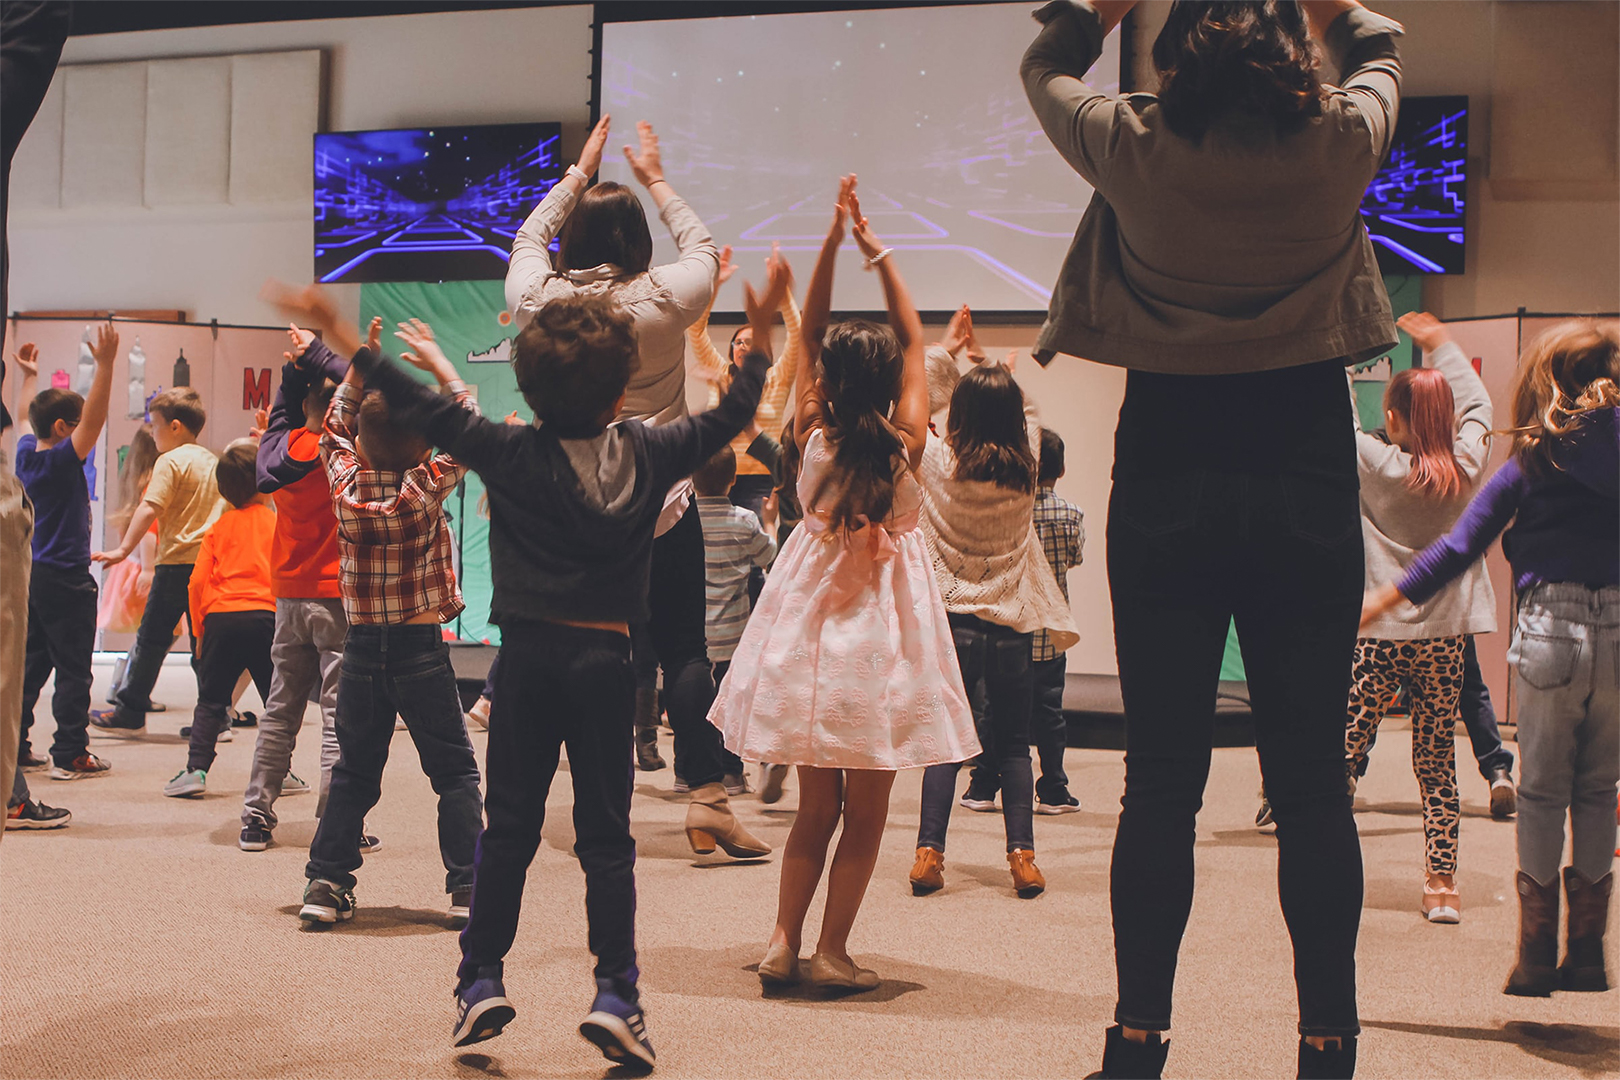 Children worshipping together.